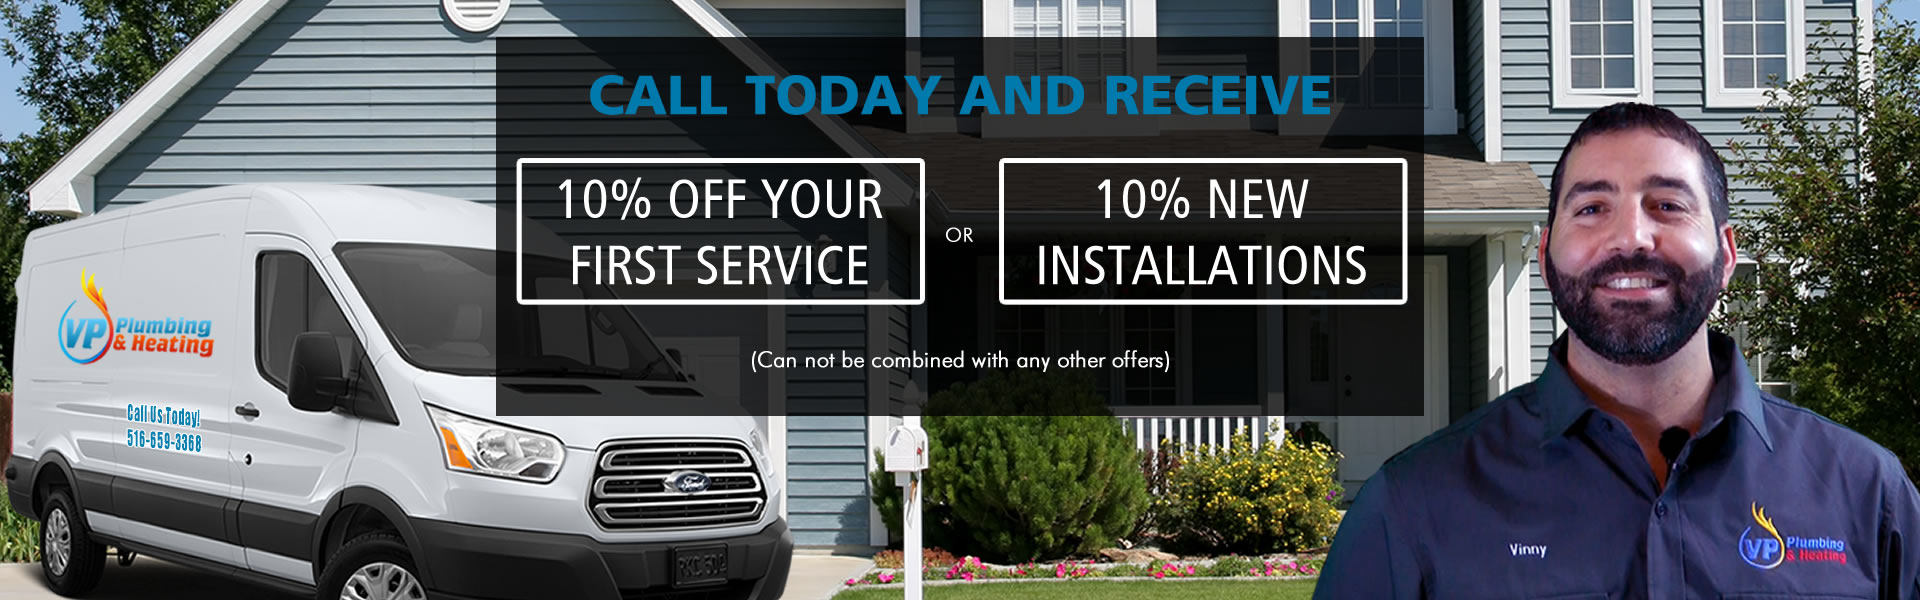 10 % Off Plumbing Services Promotion